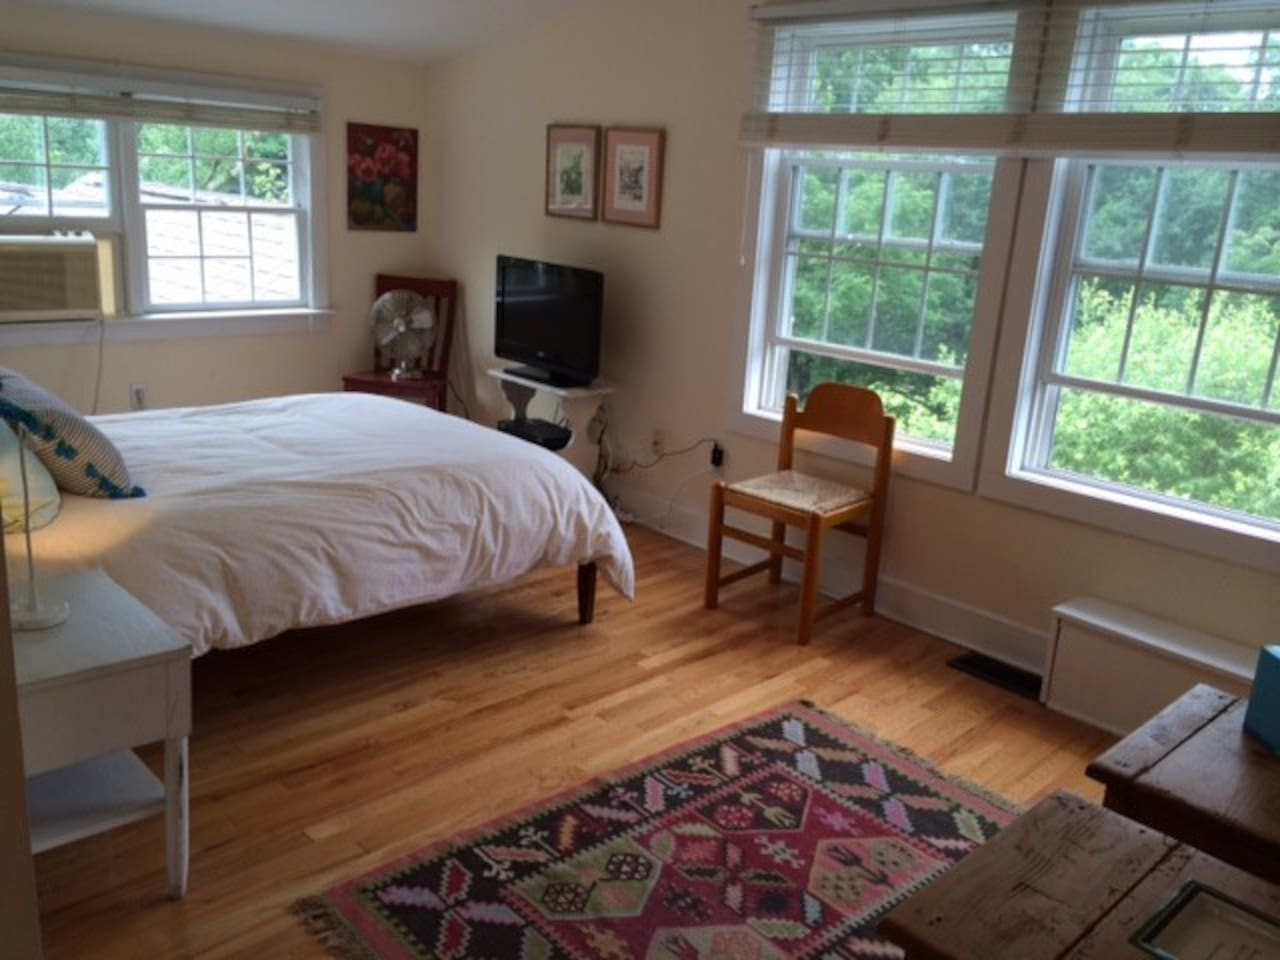 3rd floor suite - another view of bedroom area. Cable TV shown.